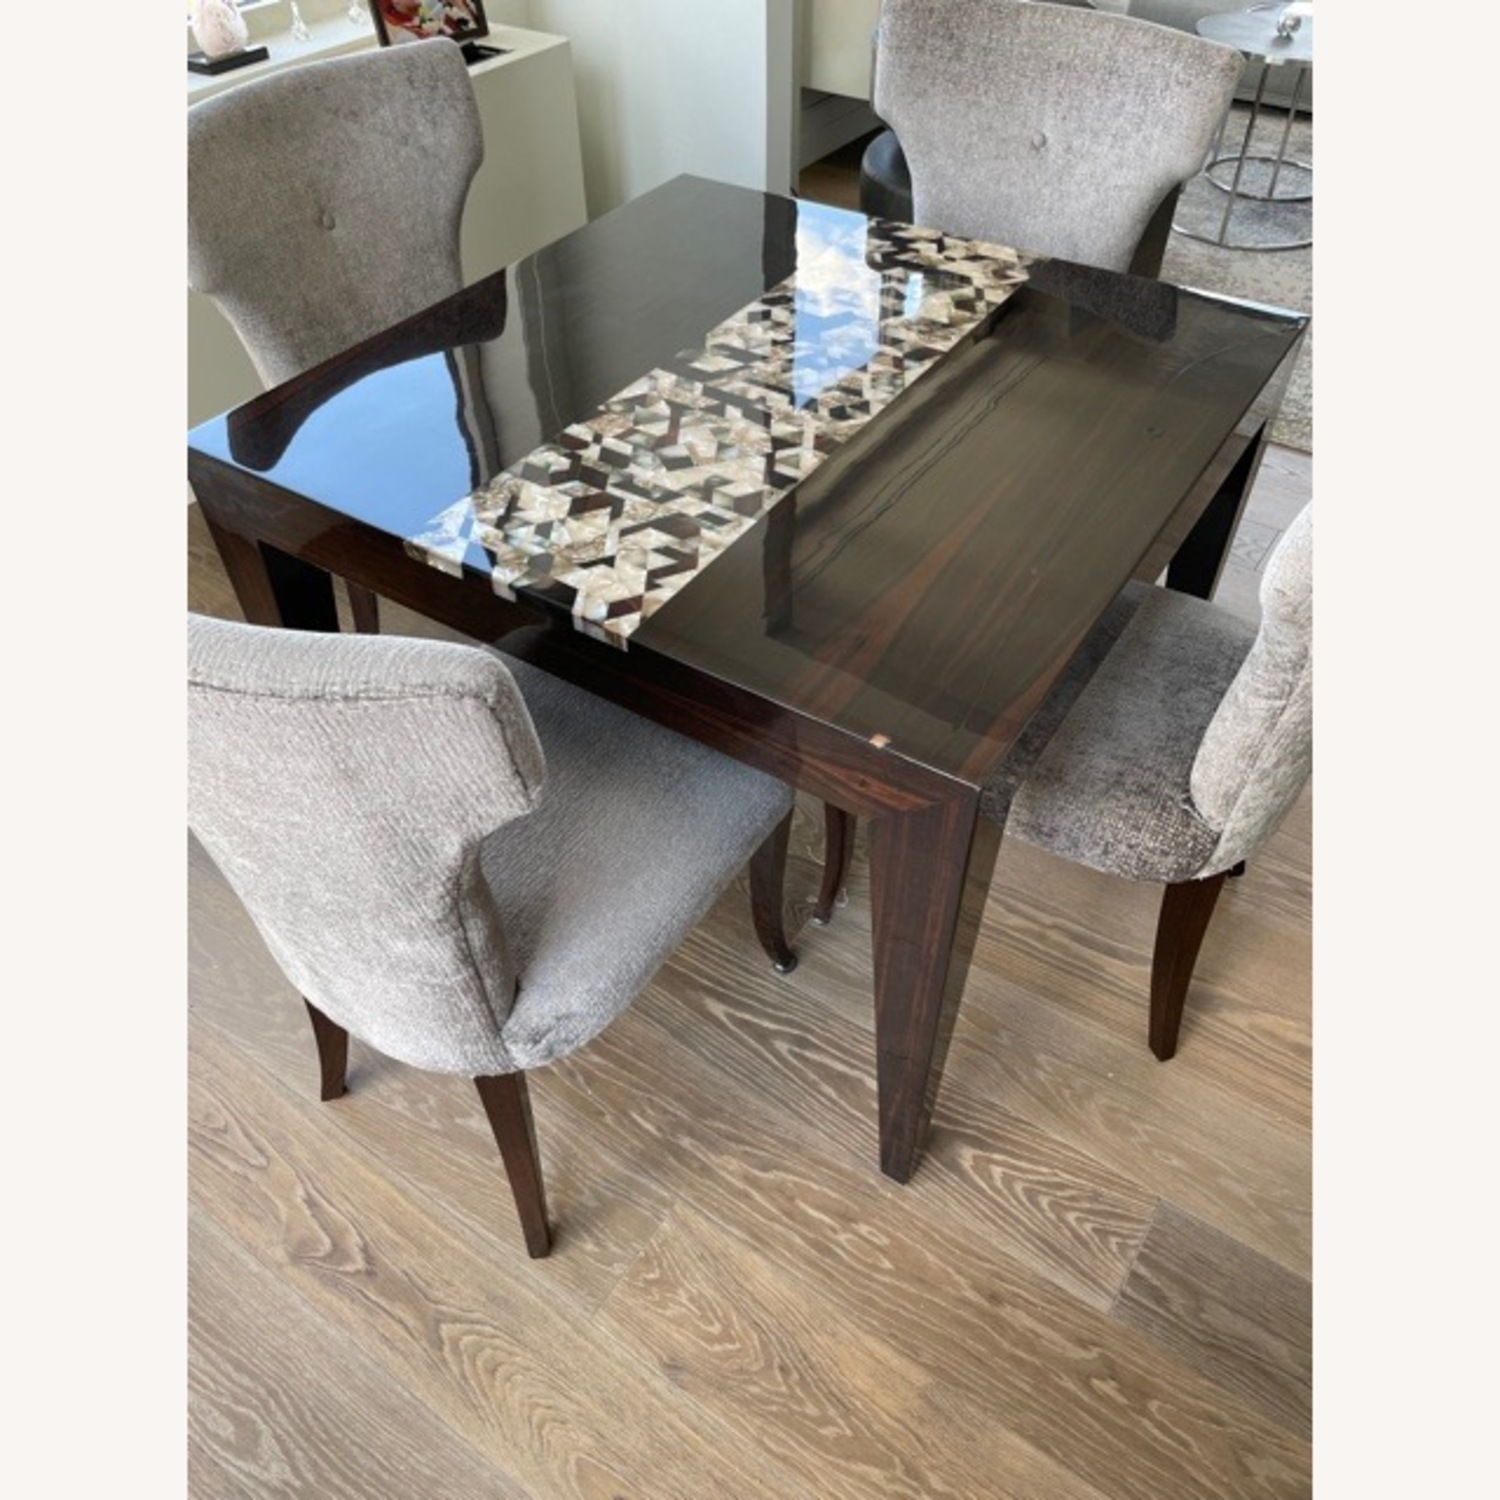 Custom Dining Table with Mother of Pearl Inlay - image-4